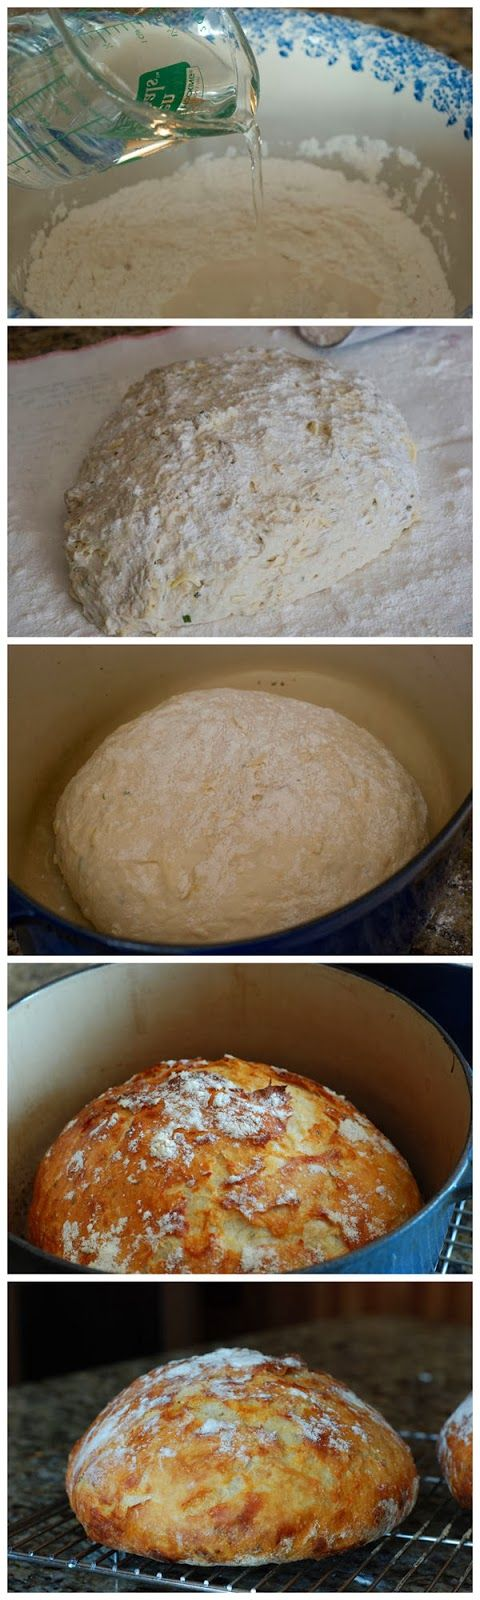 Crusty Bread - i hear this is insanely easy, took 2 minutes to stir together the dough - let it sit overnight and then bake.